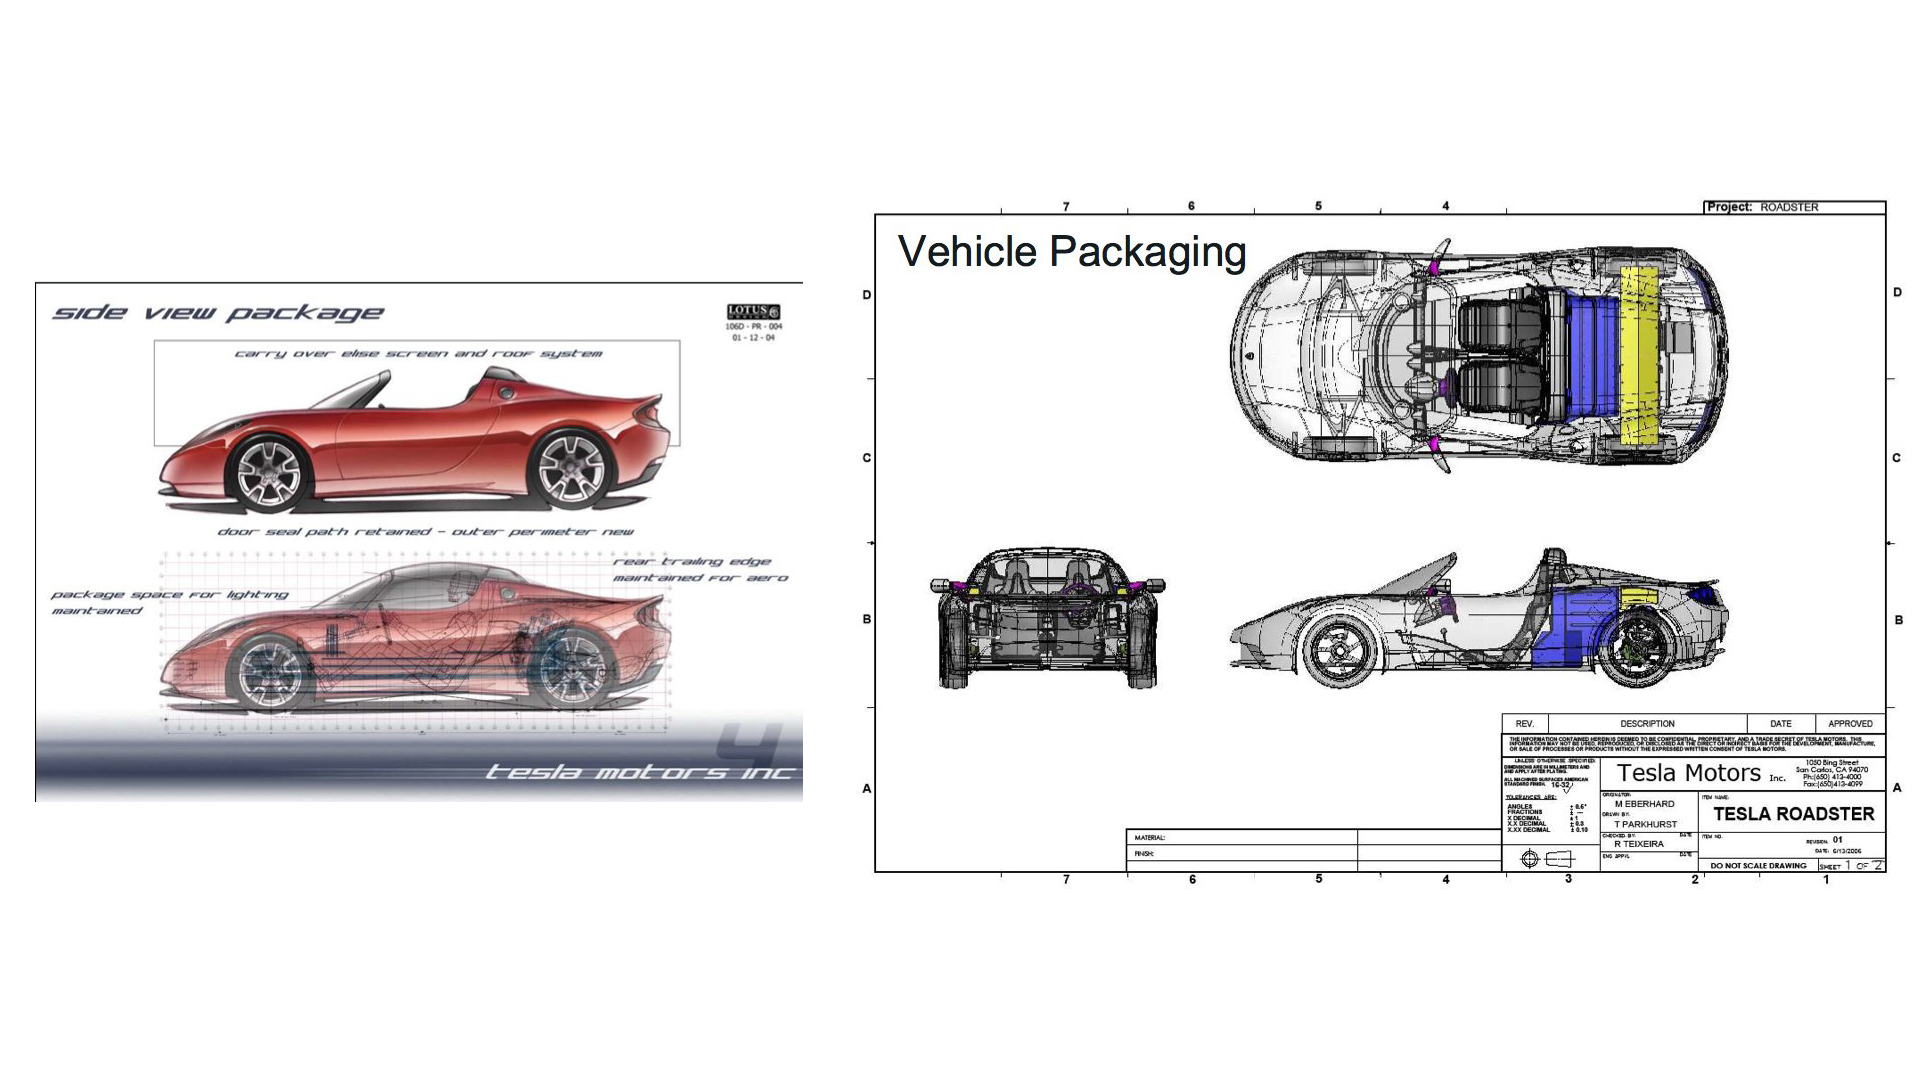 Tesla Roadster 2004 prototype sketch